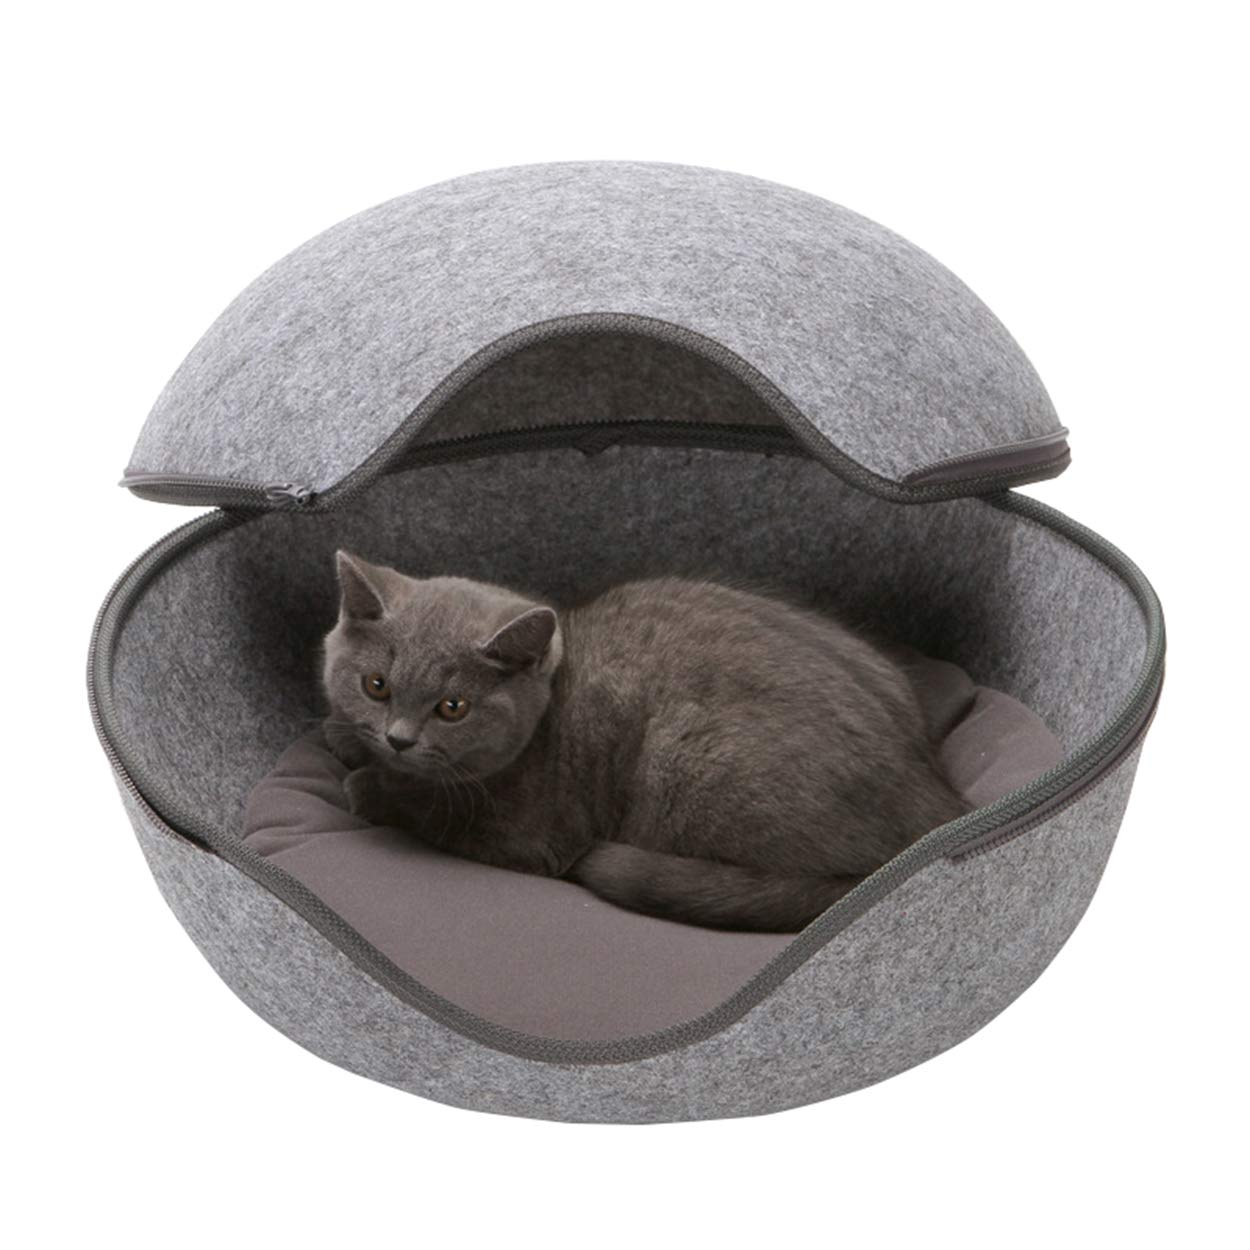 Pawant Dogs Bed Sleeping Zone All Season Cute Quality Small Dog Cat House Indoor Use Gray LGHQ-5775-GRAY